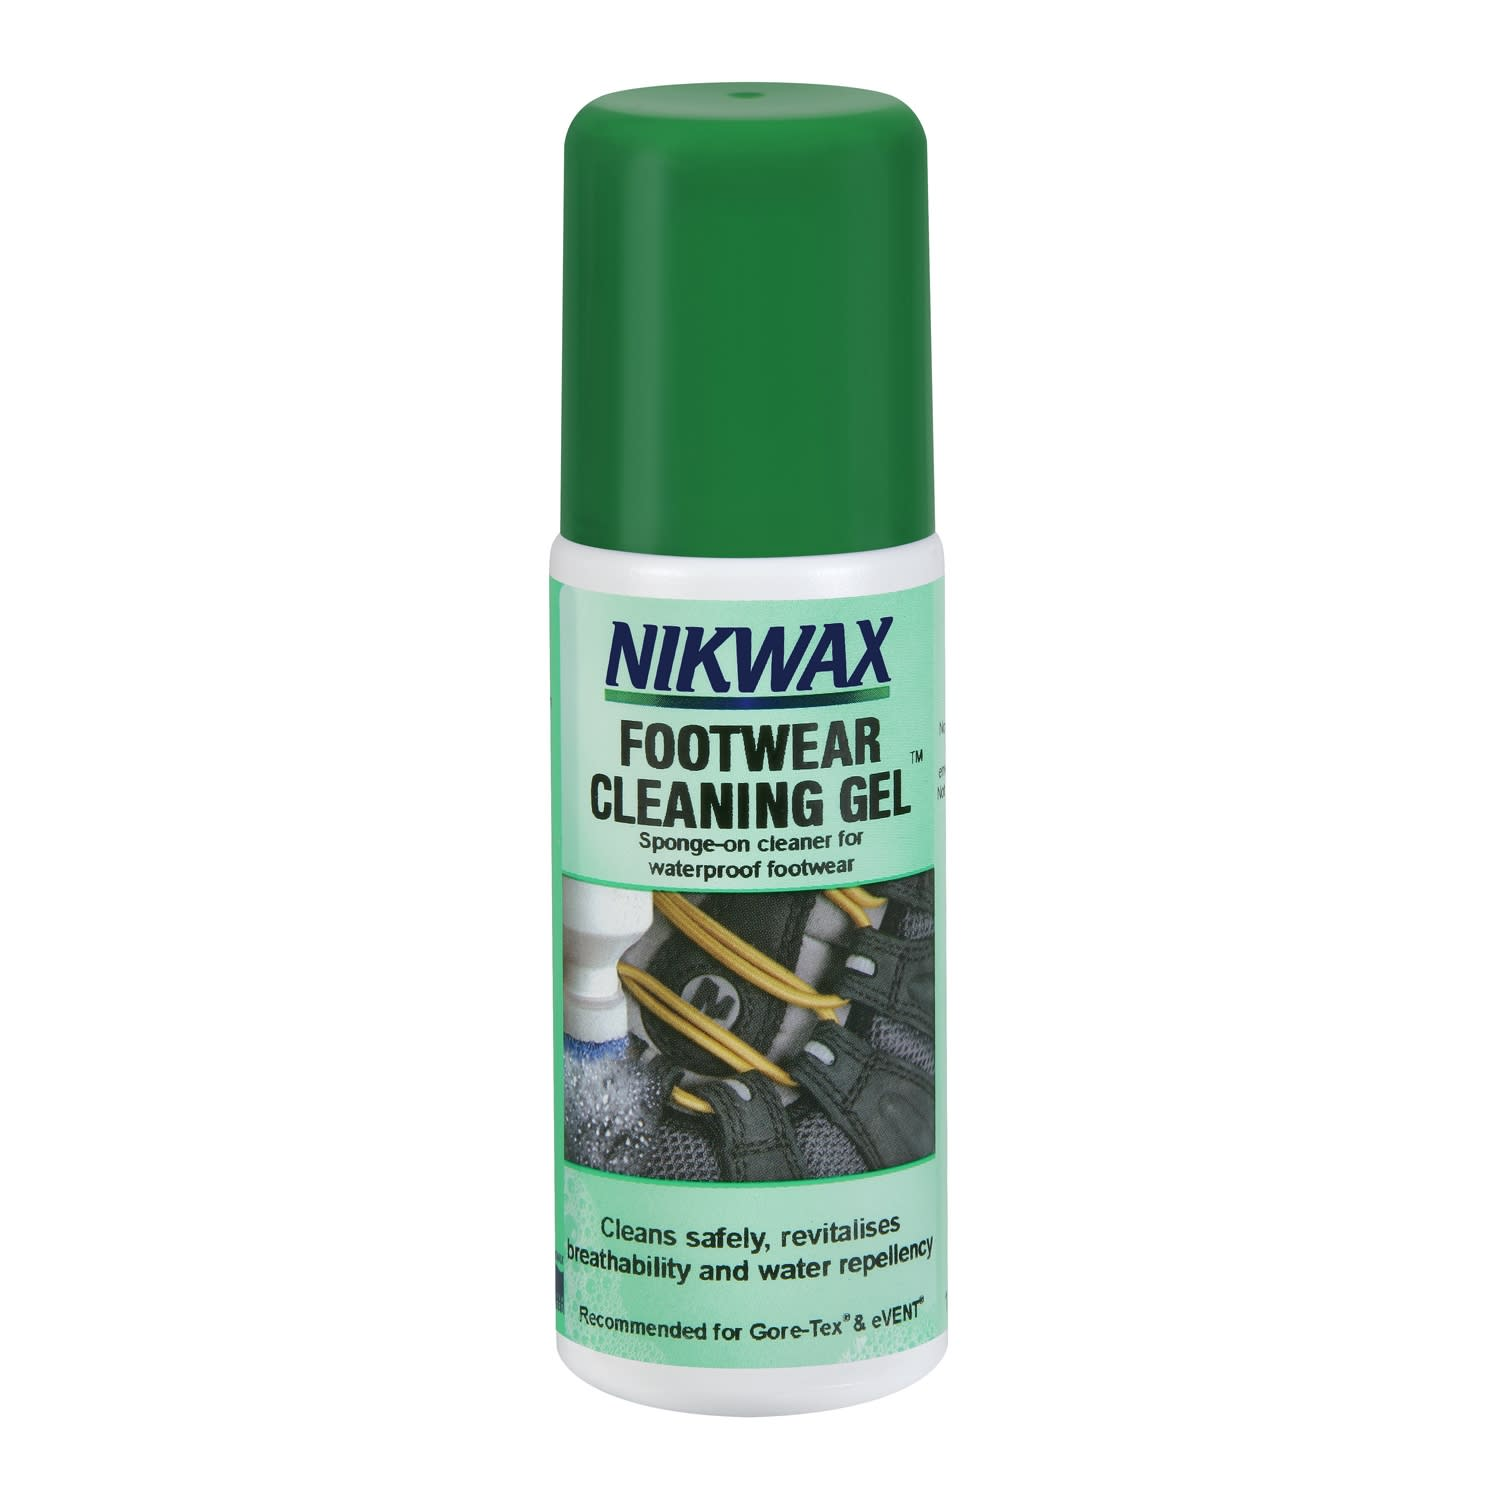 Nikwax/Footwear Cleaning Gel